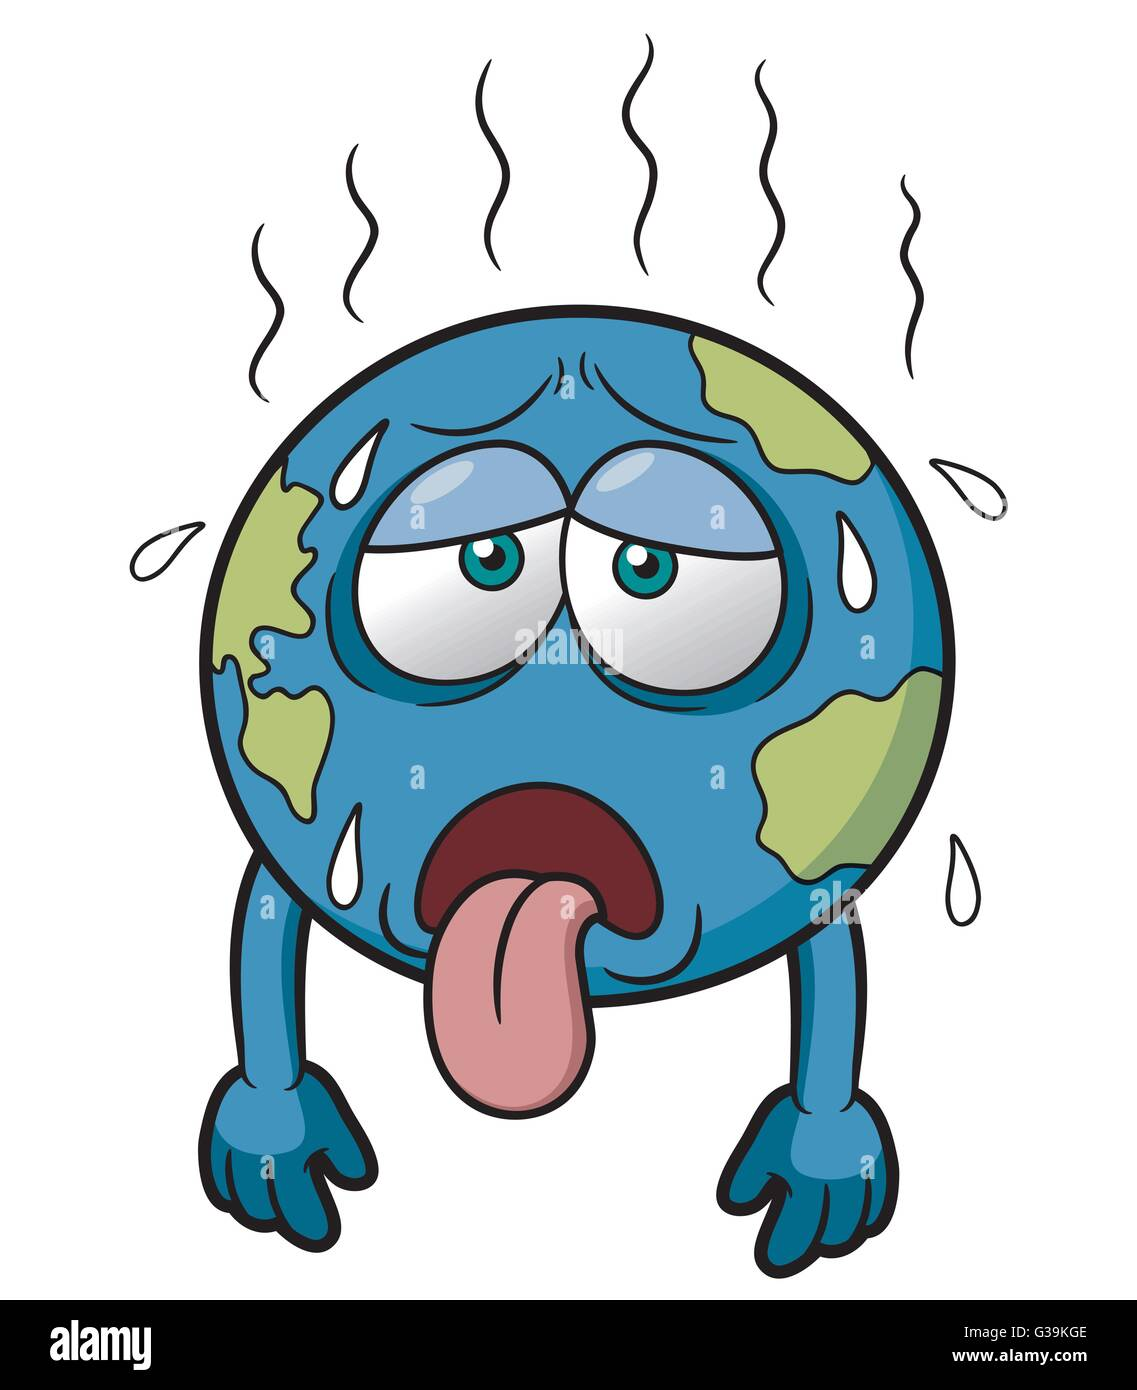 Vector illustration of Earth in Hot Weather - Stock Image